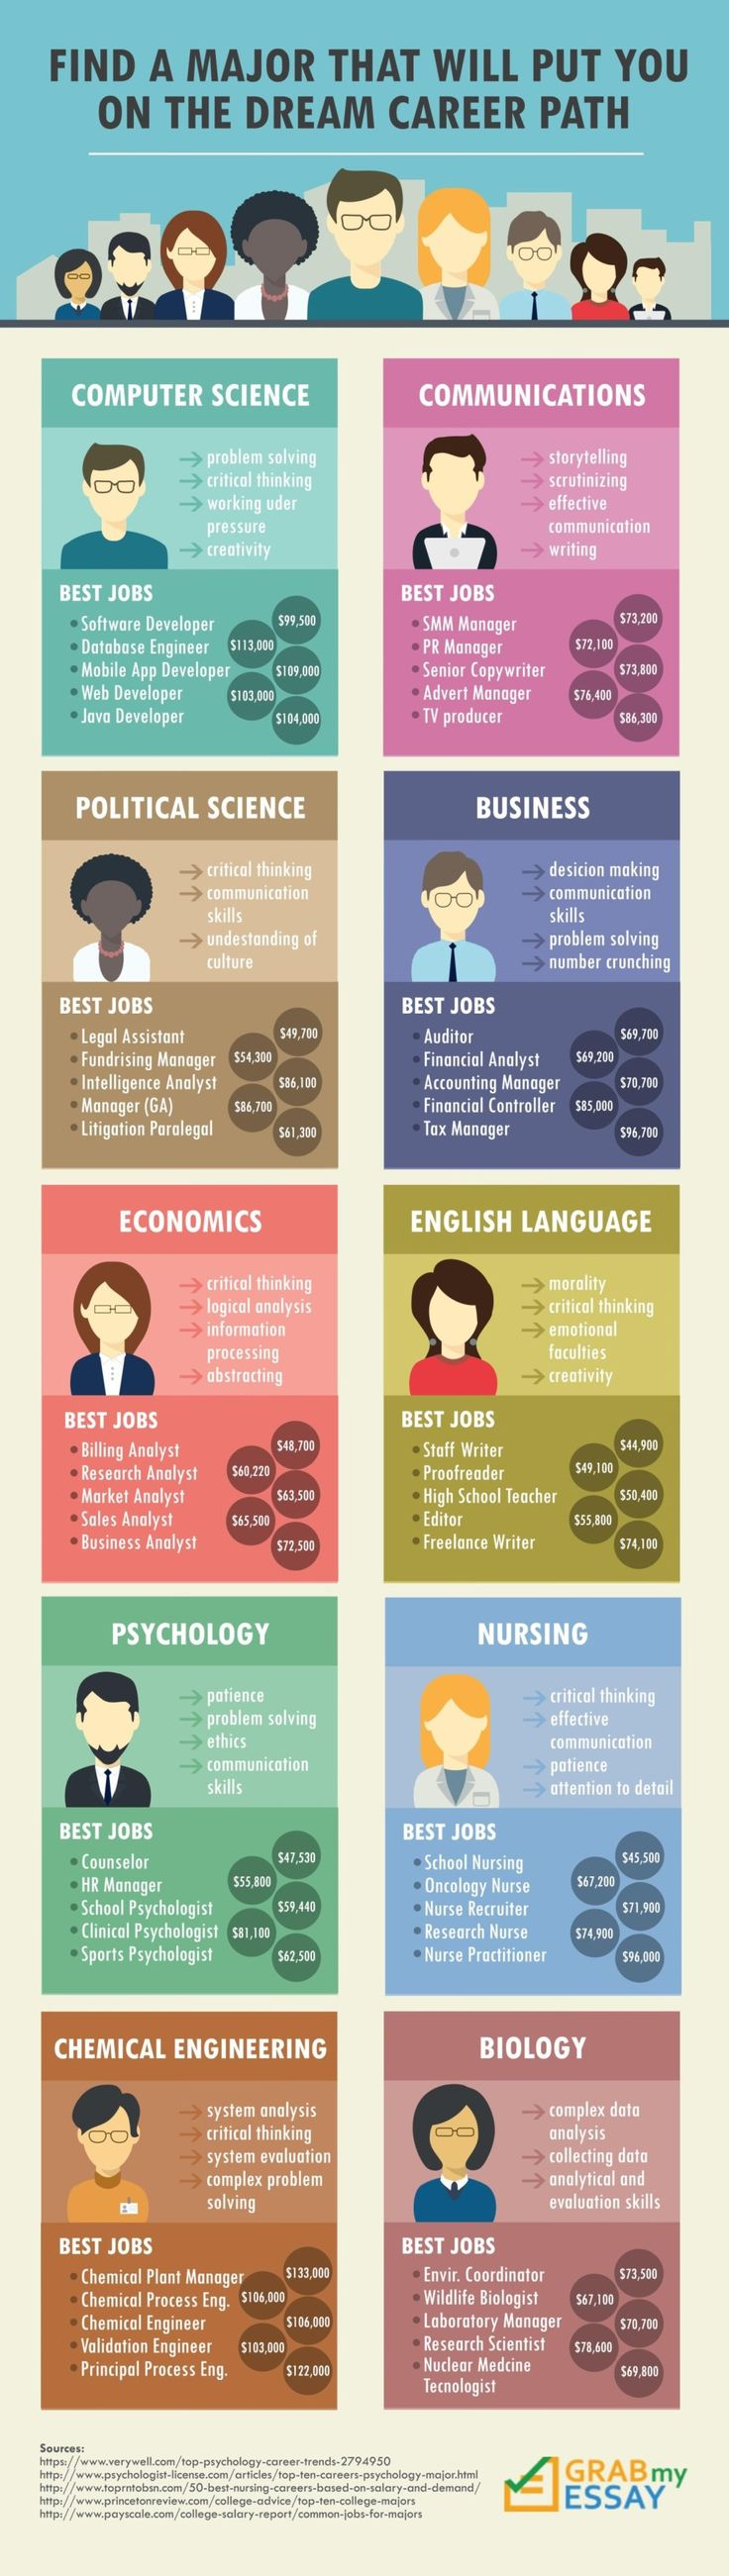 best ideas about career path resume job search find a major that will put you on the dream career path infographic